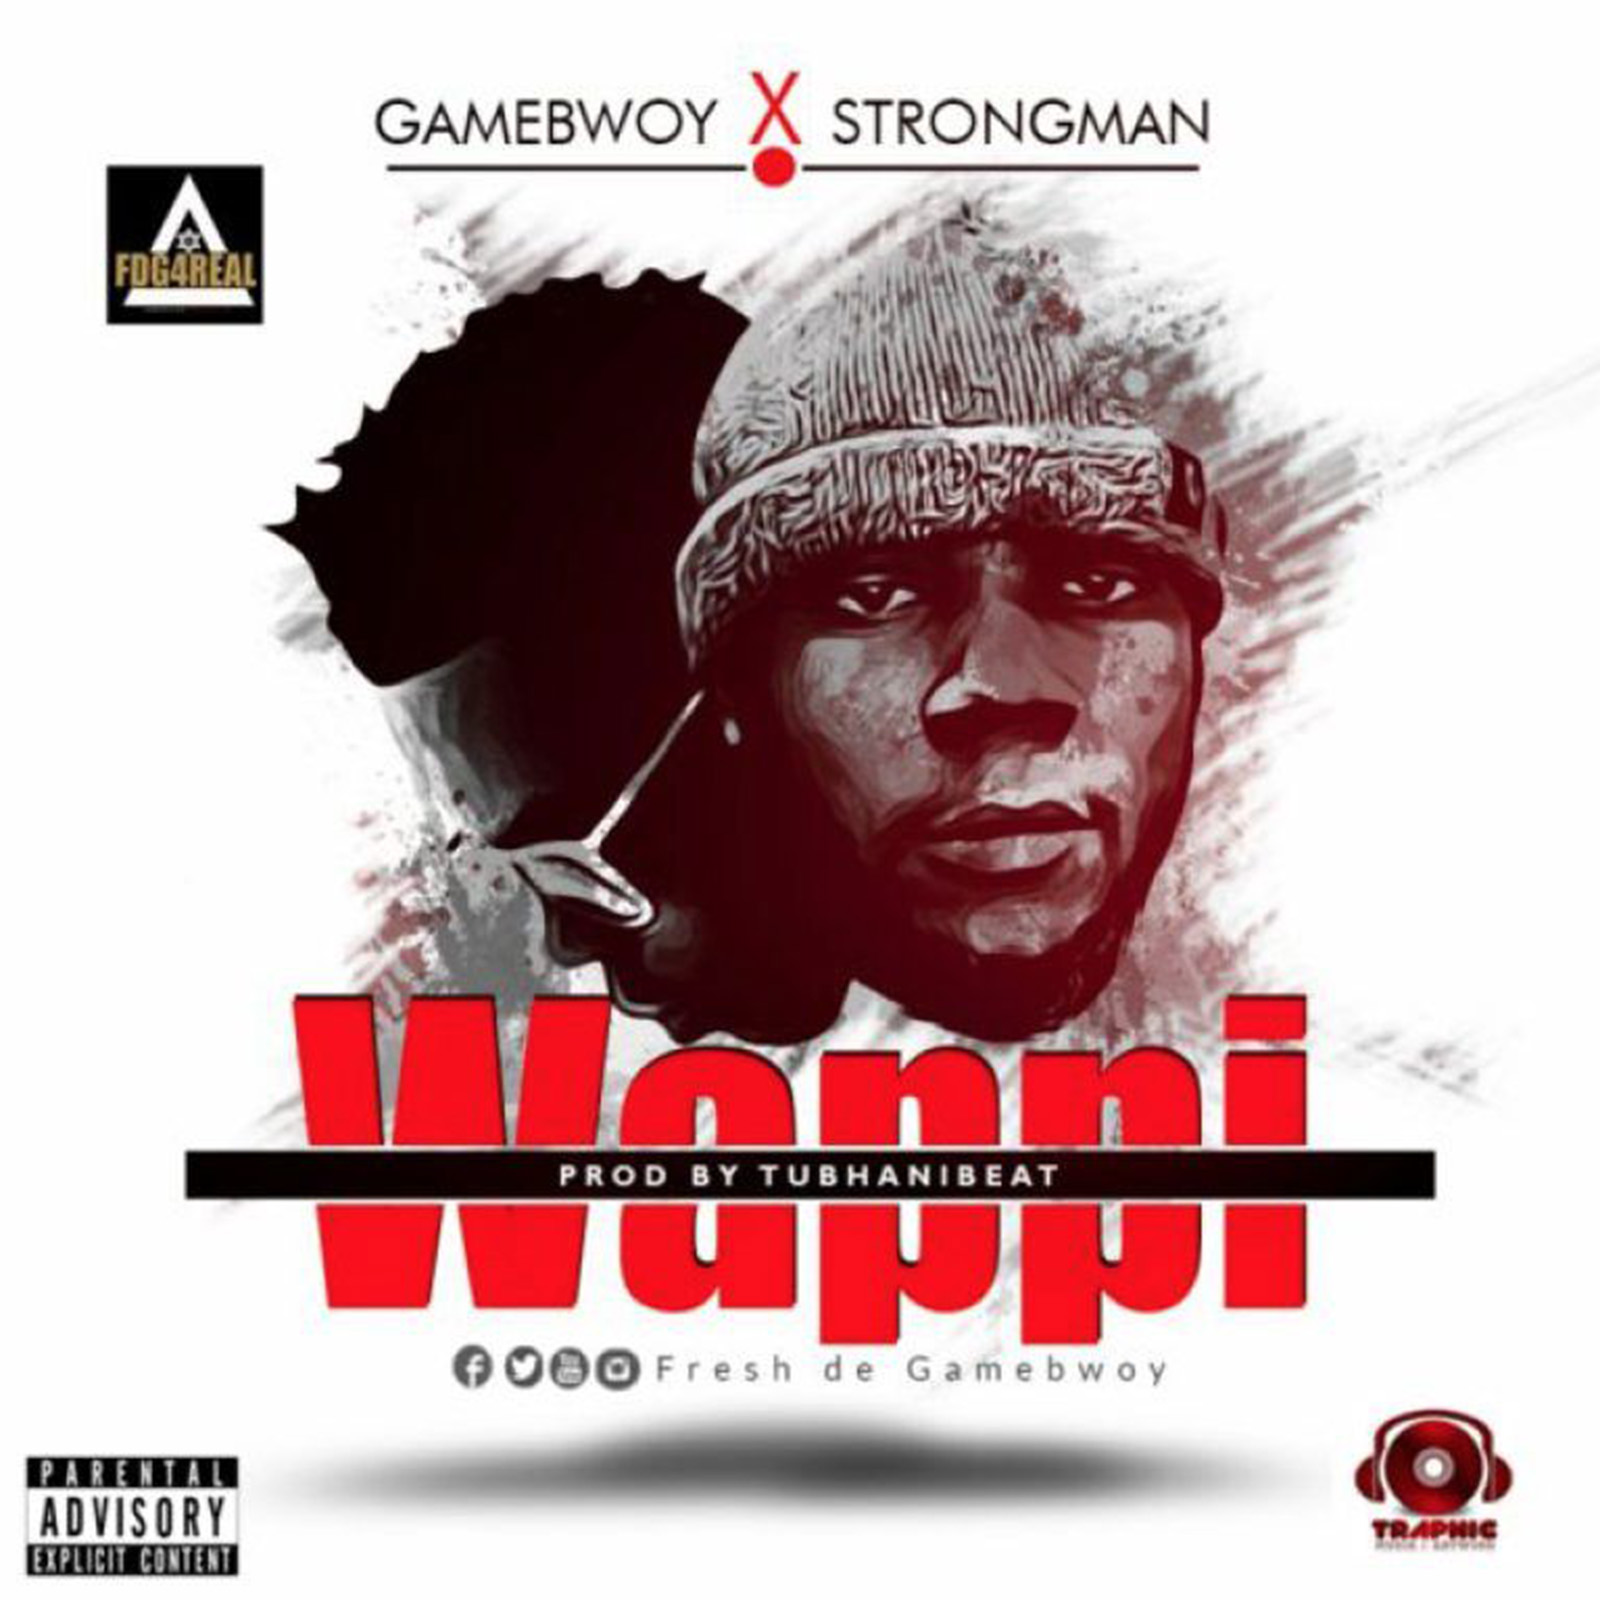 Wappi by Gameboy & Strongman